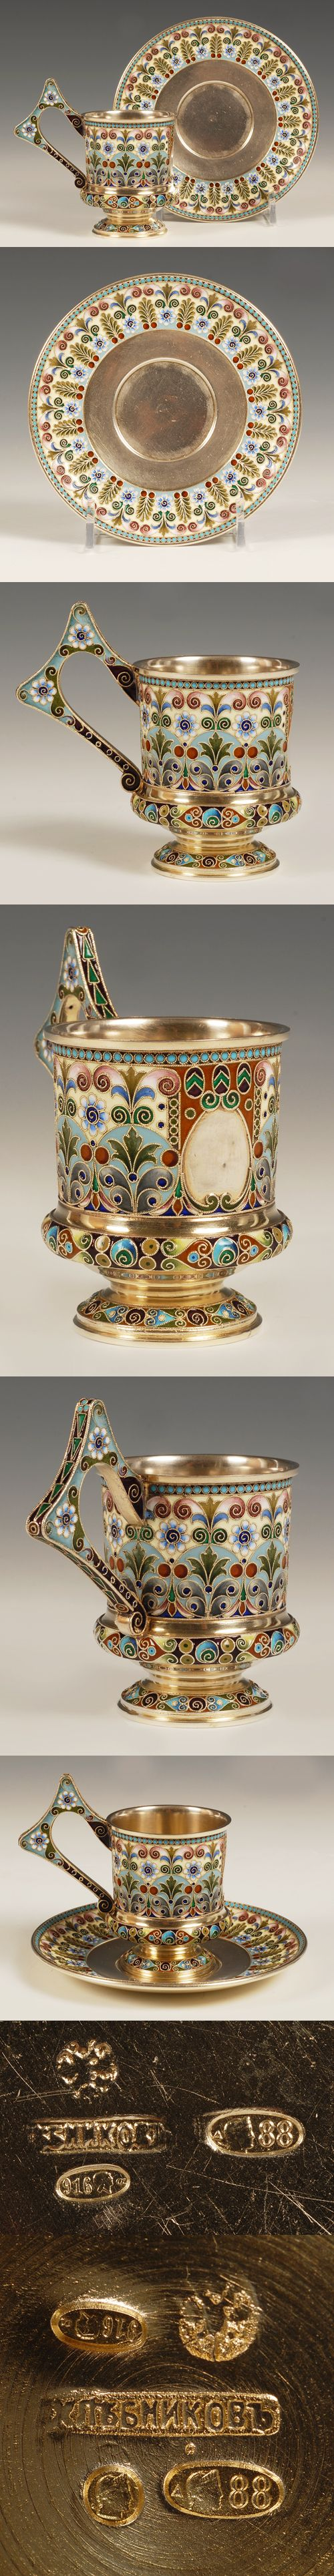 A Russian silver gilt and shaded cloisonne enamel demi-tasse cup nd saucer, Ivan Khlebnikov, Moscow, circa 1908-1917. The footed cup enameled throughout with multi-color flower-heads and foliate designs on cream and blu grounds, the saucer similarly decorated around the rim.